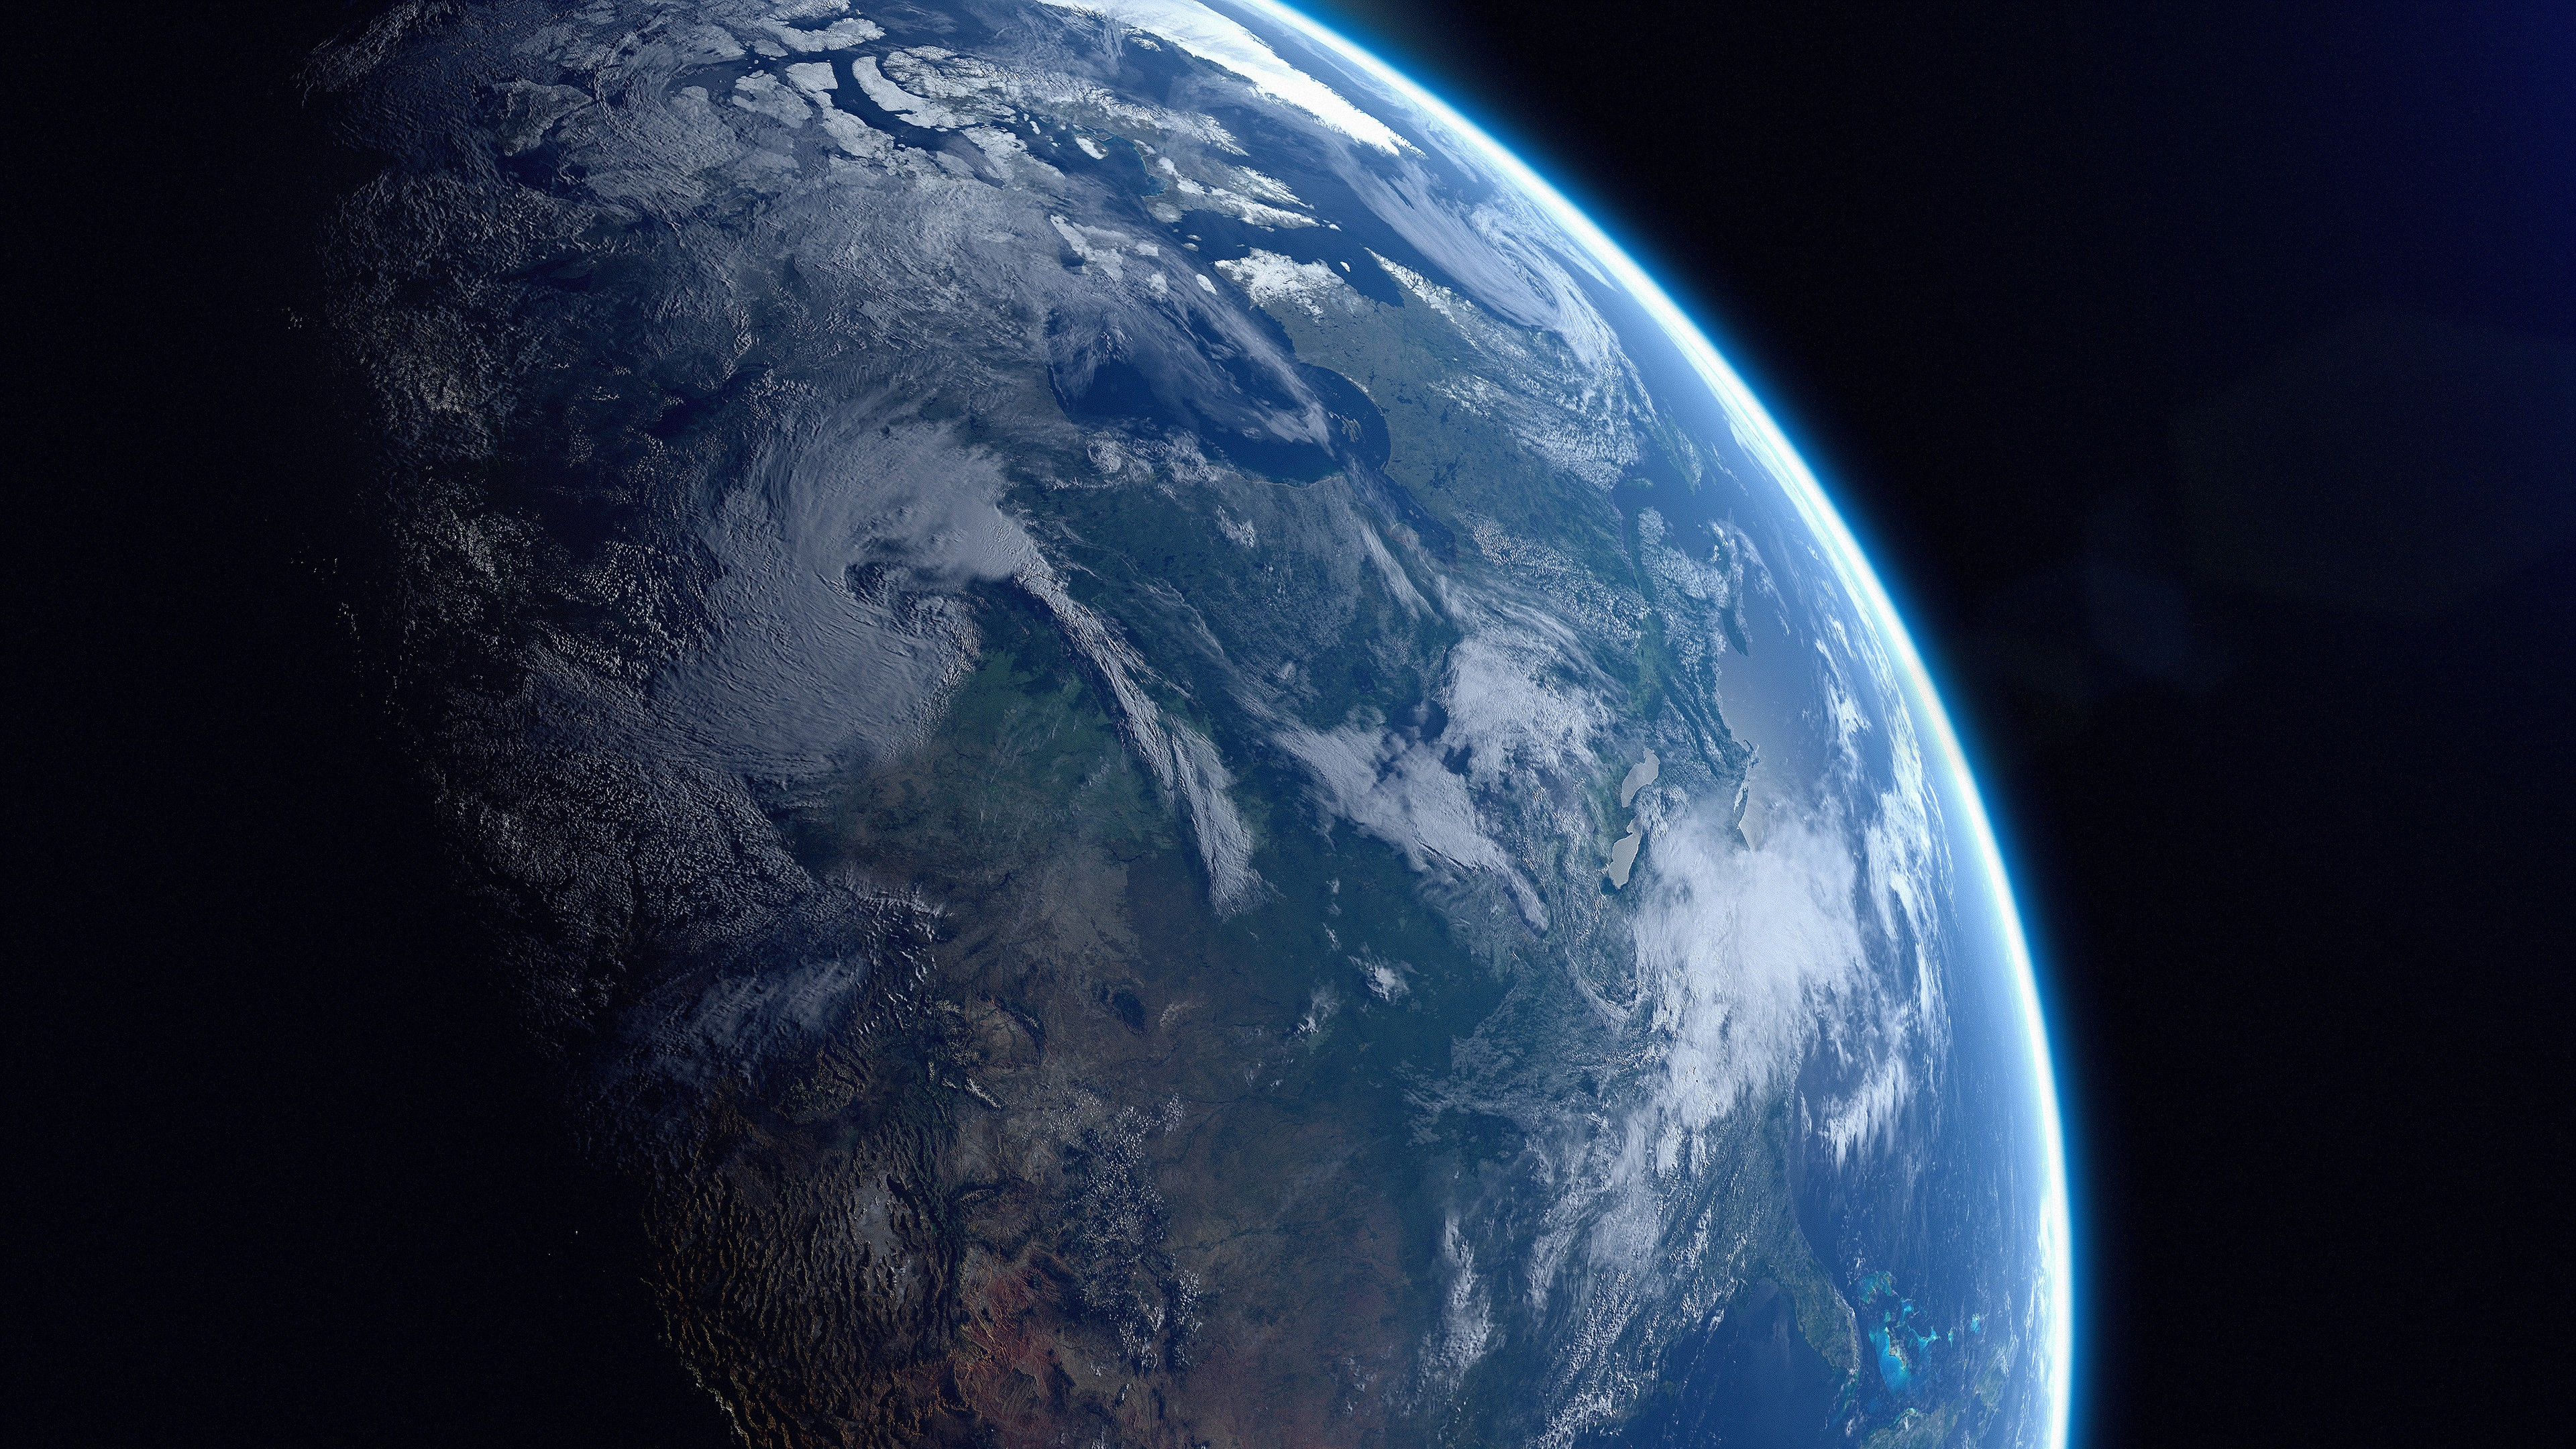 Earth Planet Area 3132638 Hd Wallpaper Backgrounds Download